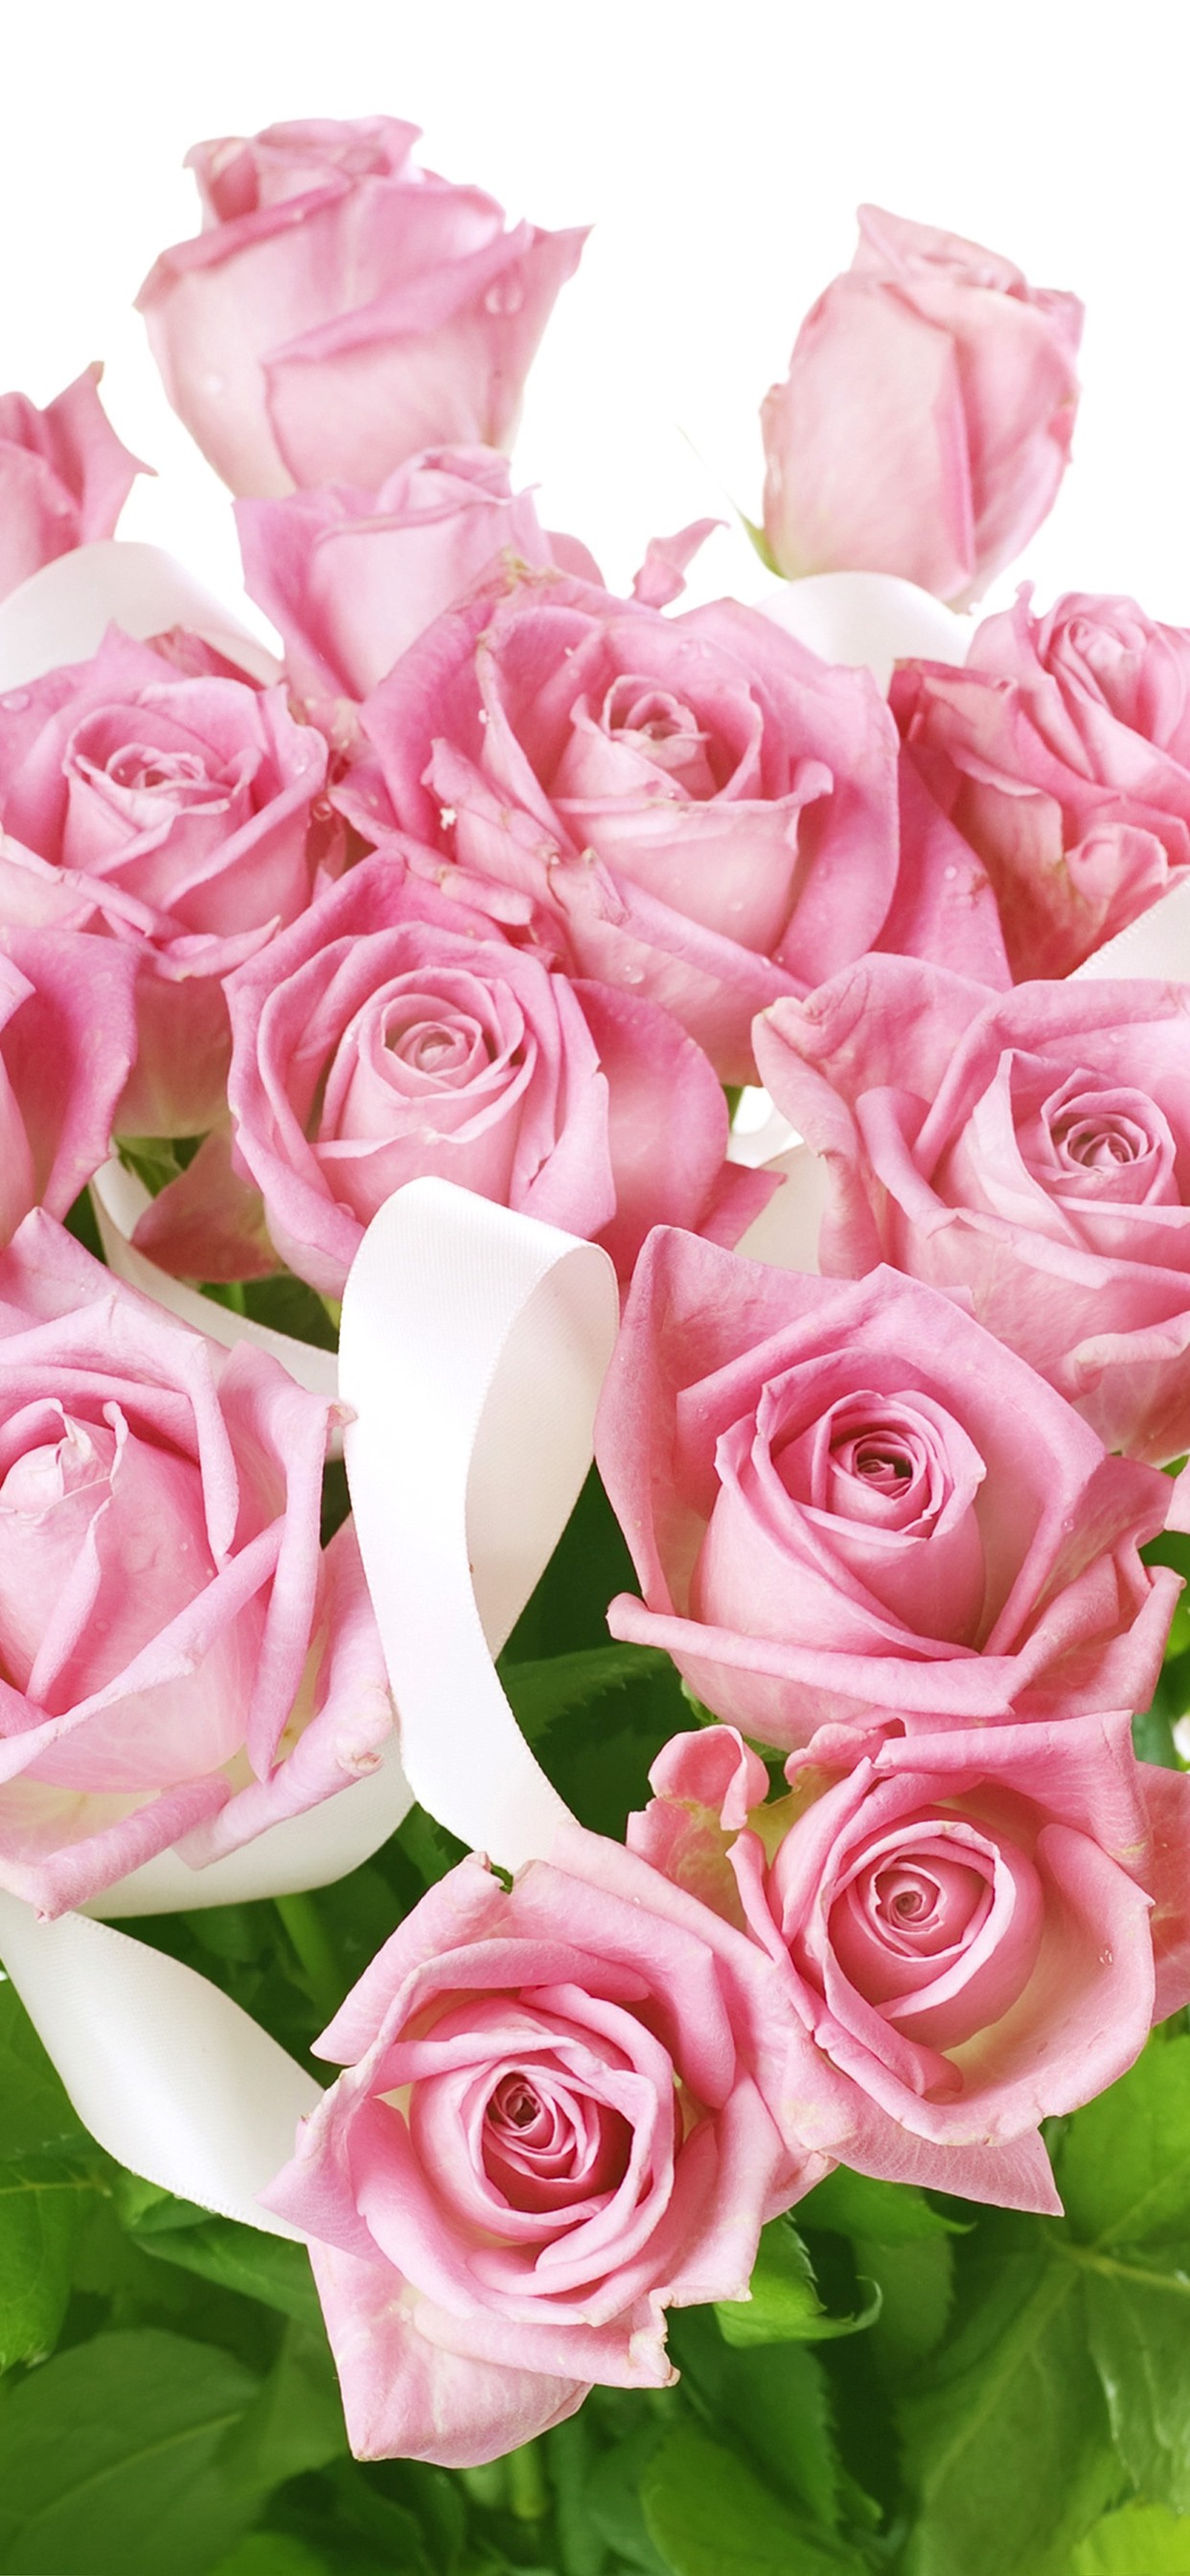 Pink Roses Bouquet White Background 1242x2688 Iphone Xs Max